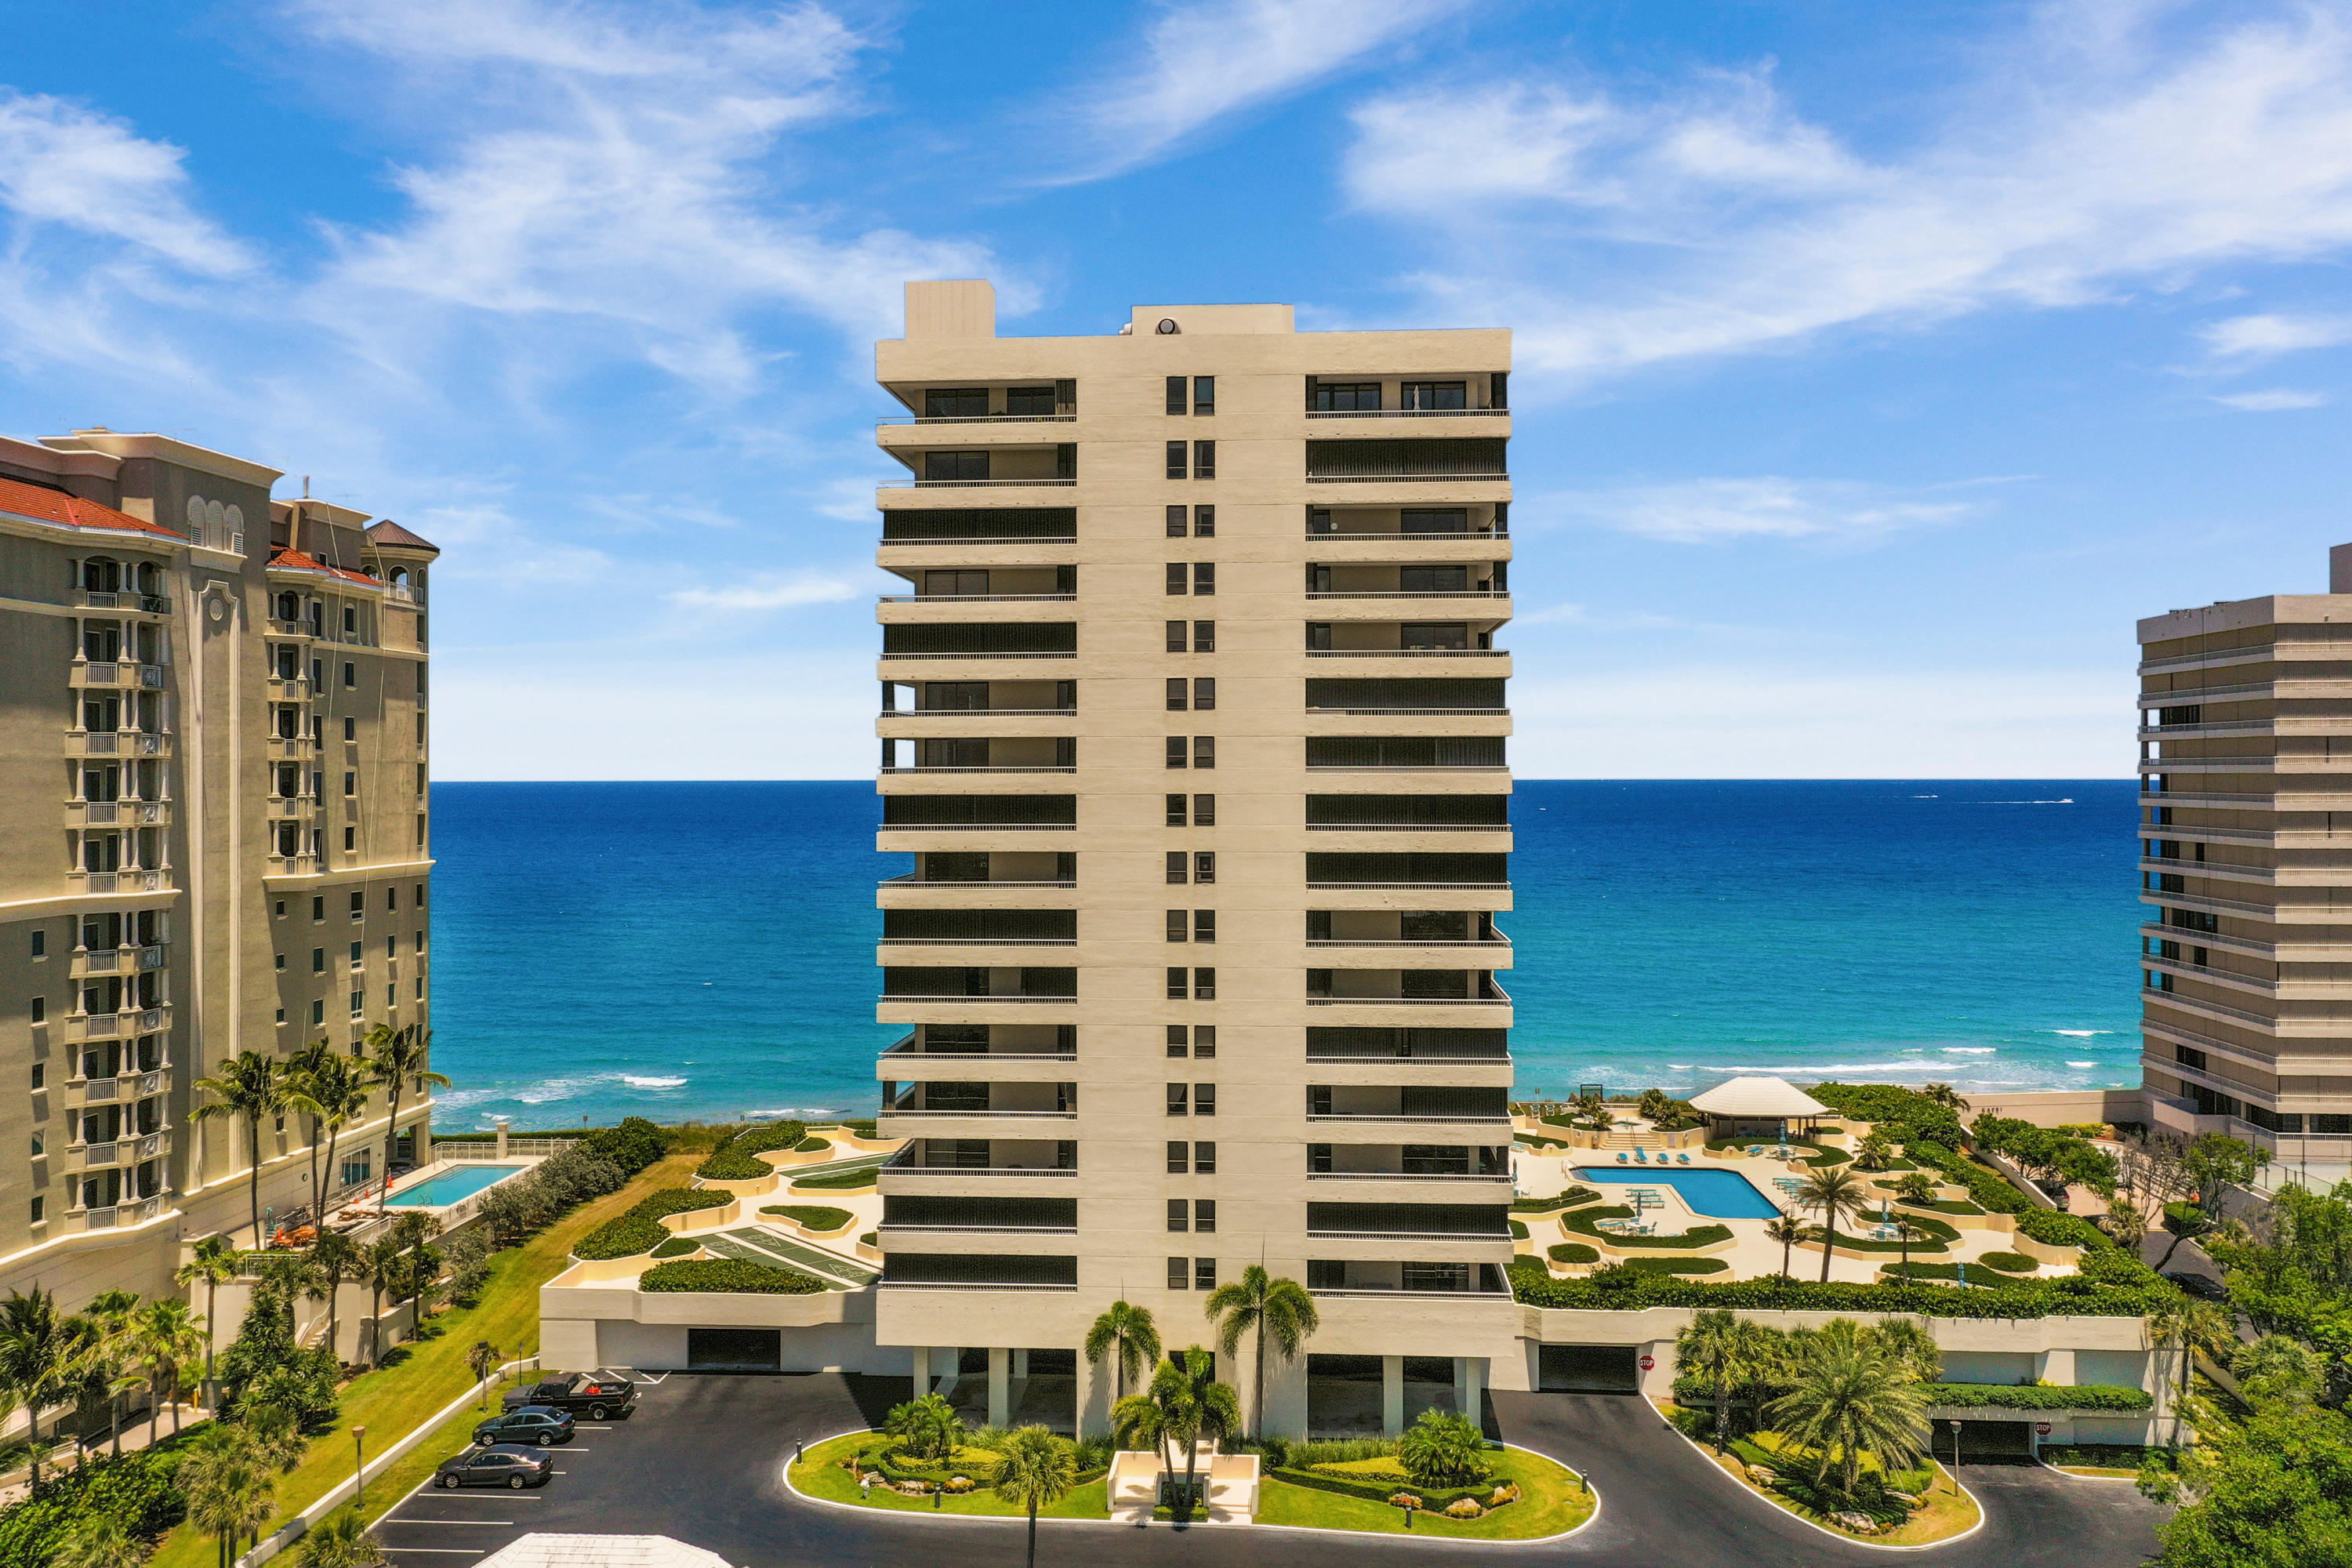 New Home for sale at 5280 Ocean Drive in Singer Island